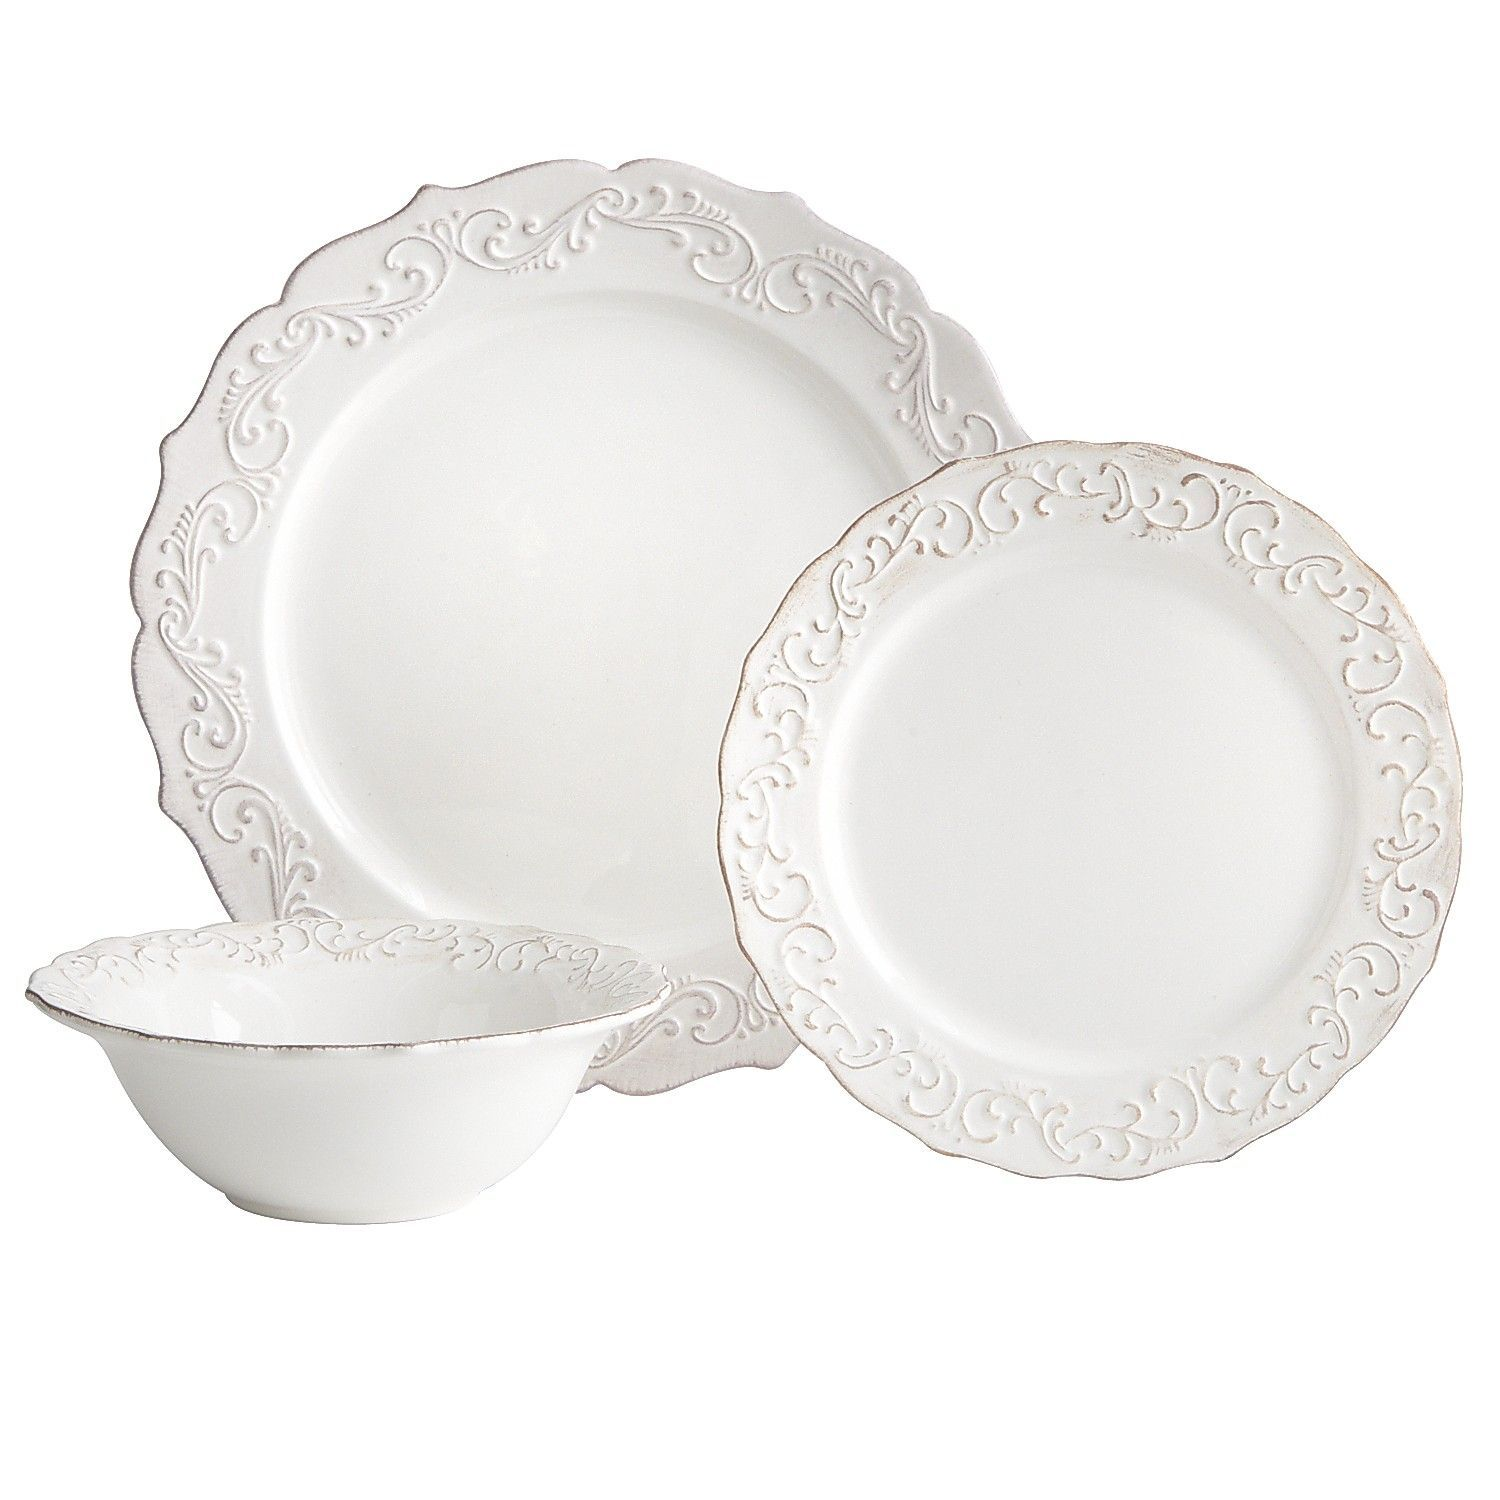 Antique Scroll Dinnerware from Pier1 - LOVE this for formal dining holidays etc.  sc 1 st  Pinterest & Antique Scroll White Dinnerware | Dinnerware Kitchen redo and Ware F.C.